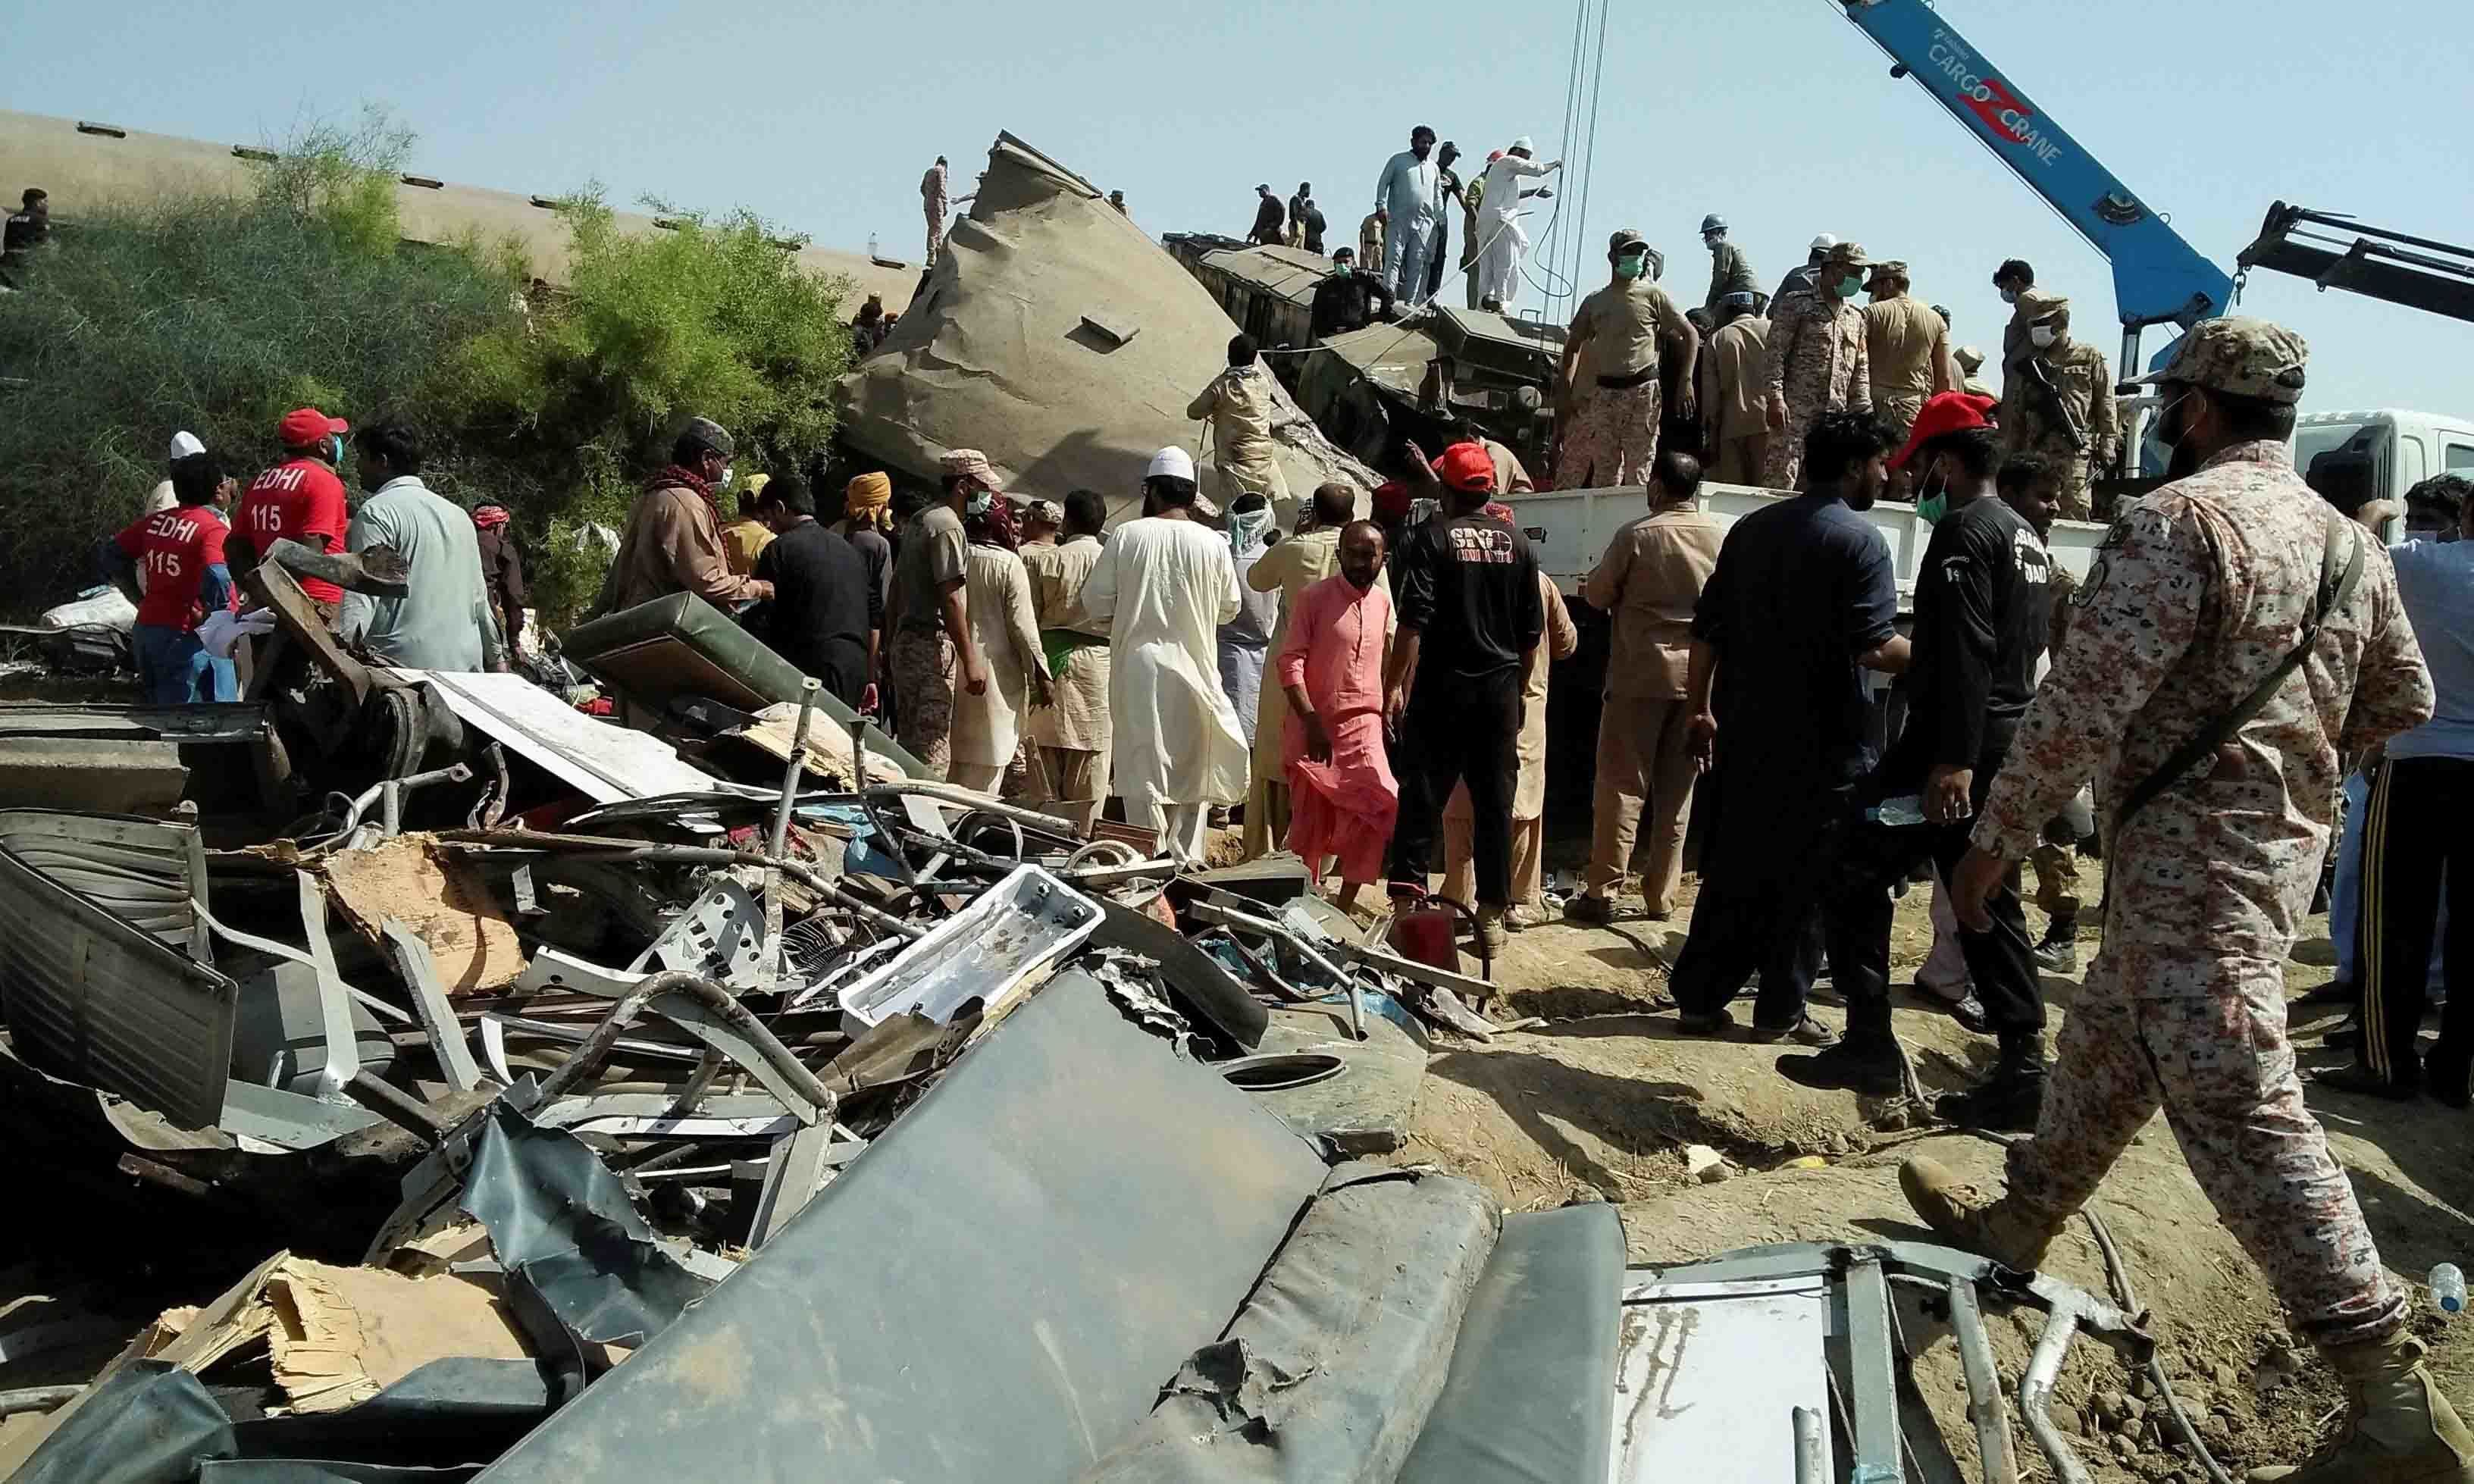 Paramilitary soldiers and rescue workers gather at the site following a collision between two trains in Ghotki, Pakistan June 7. — Reuters